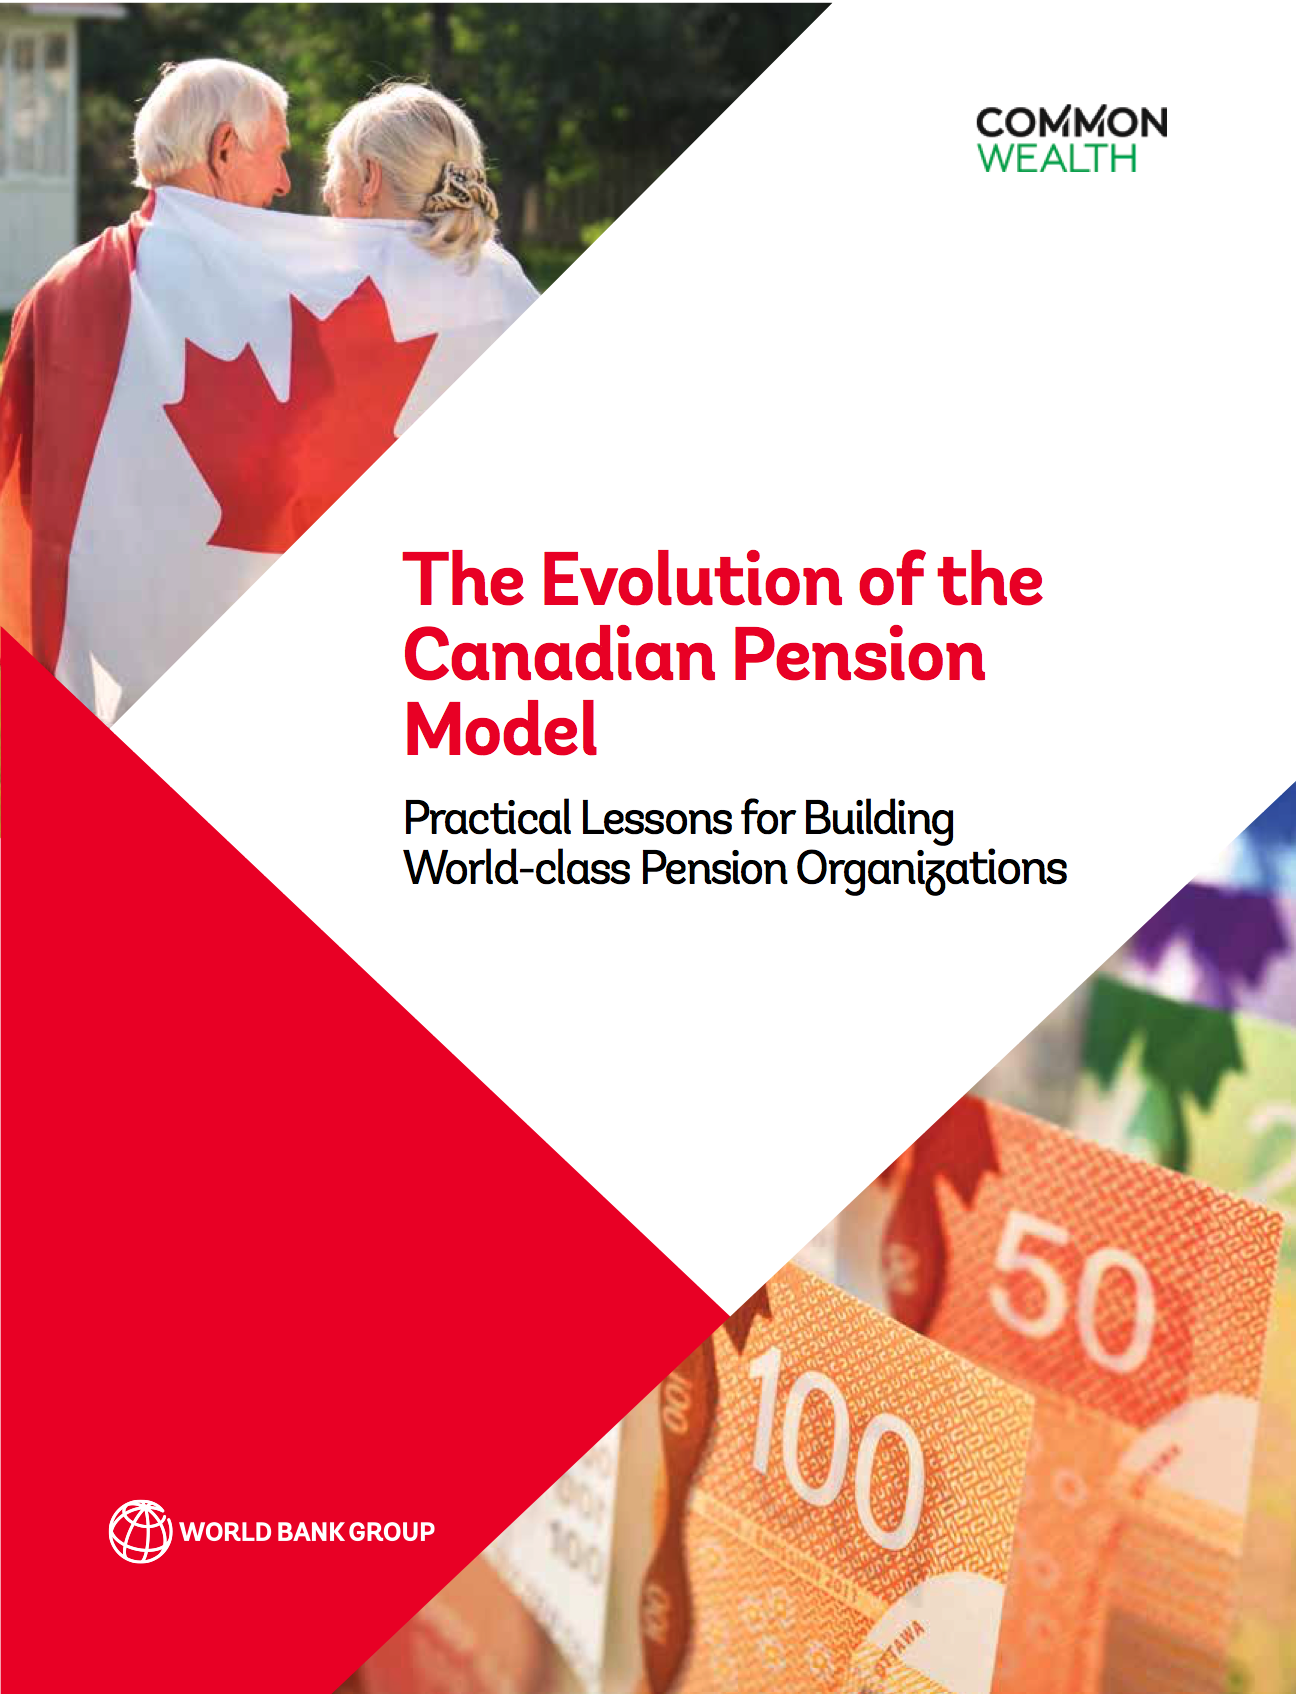 The Evolution of the Canadian Pension Model: World Bank Report